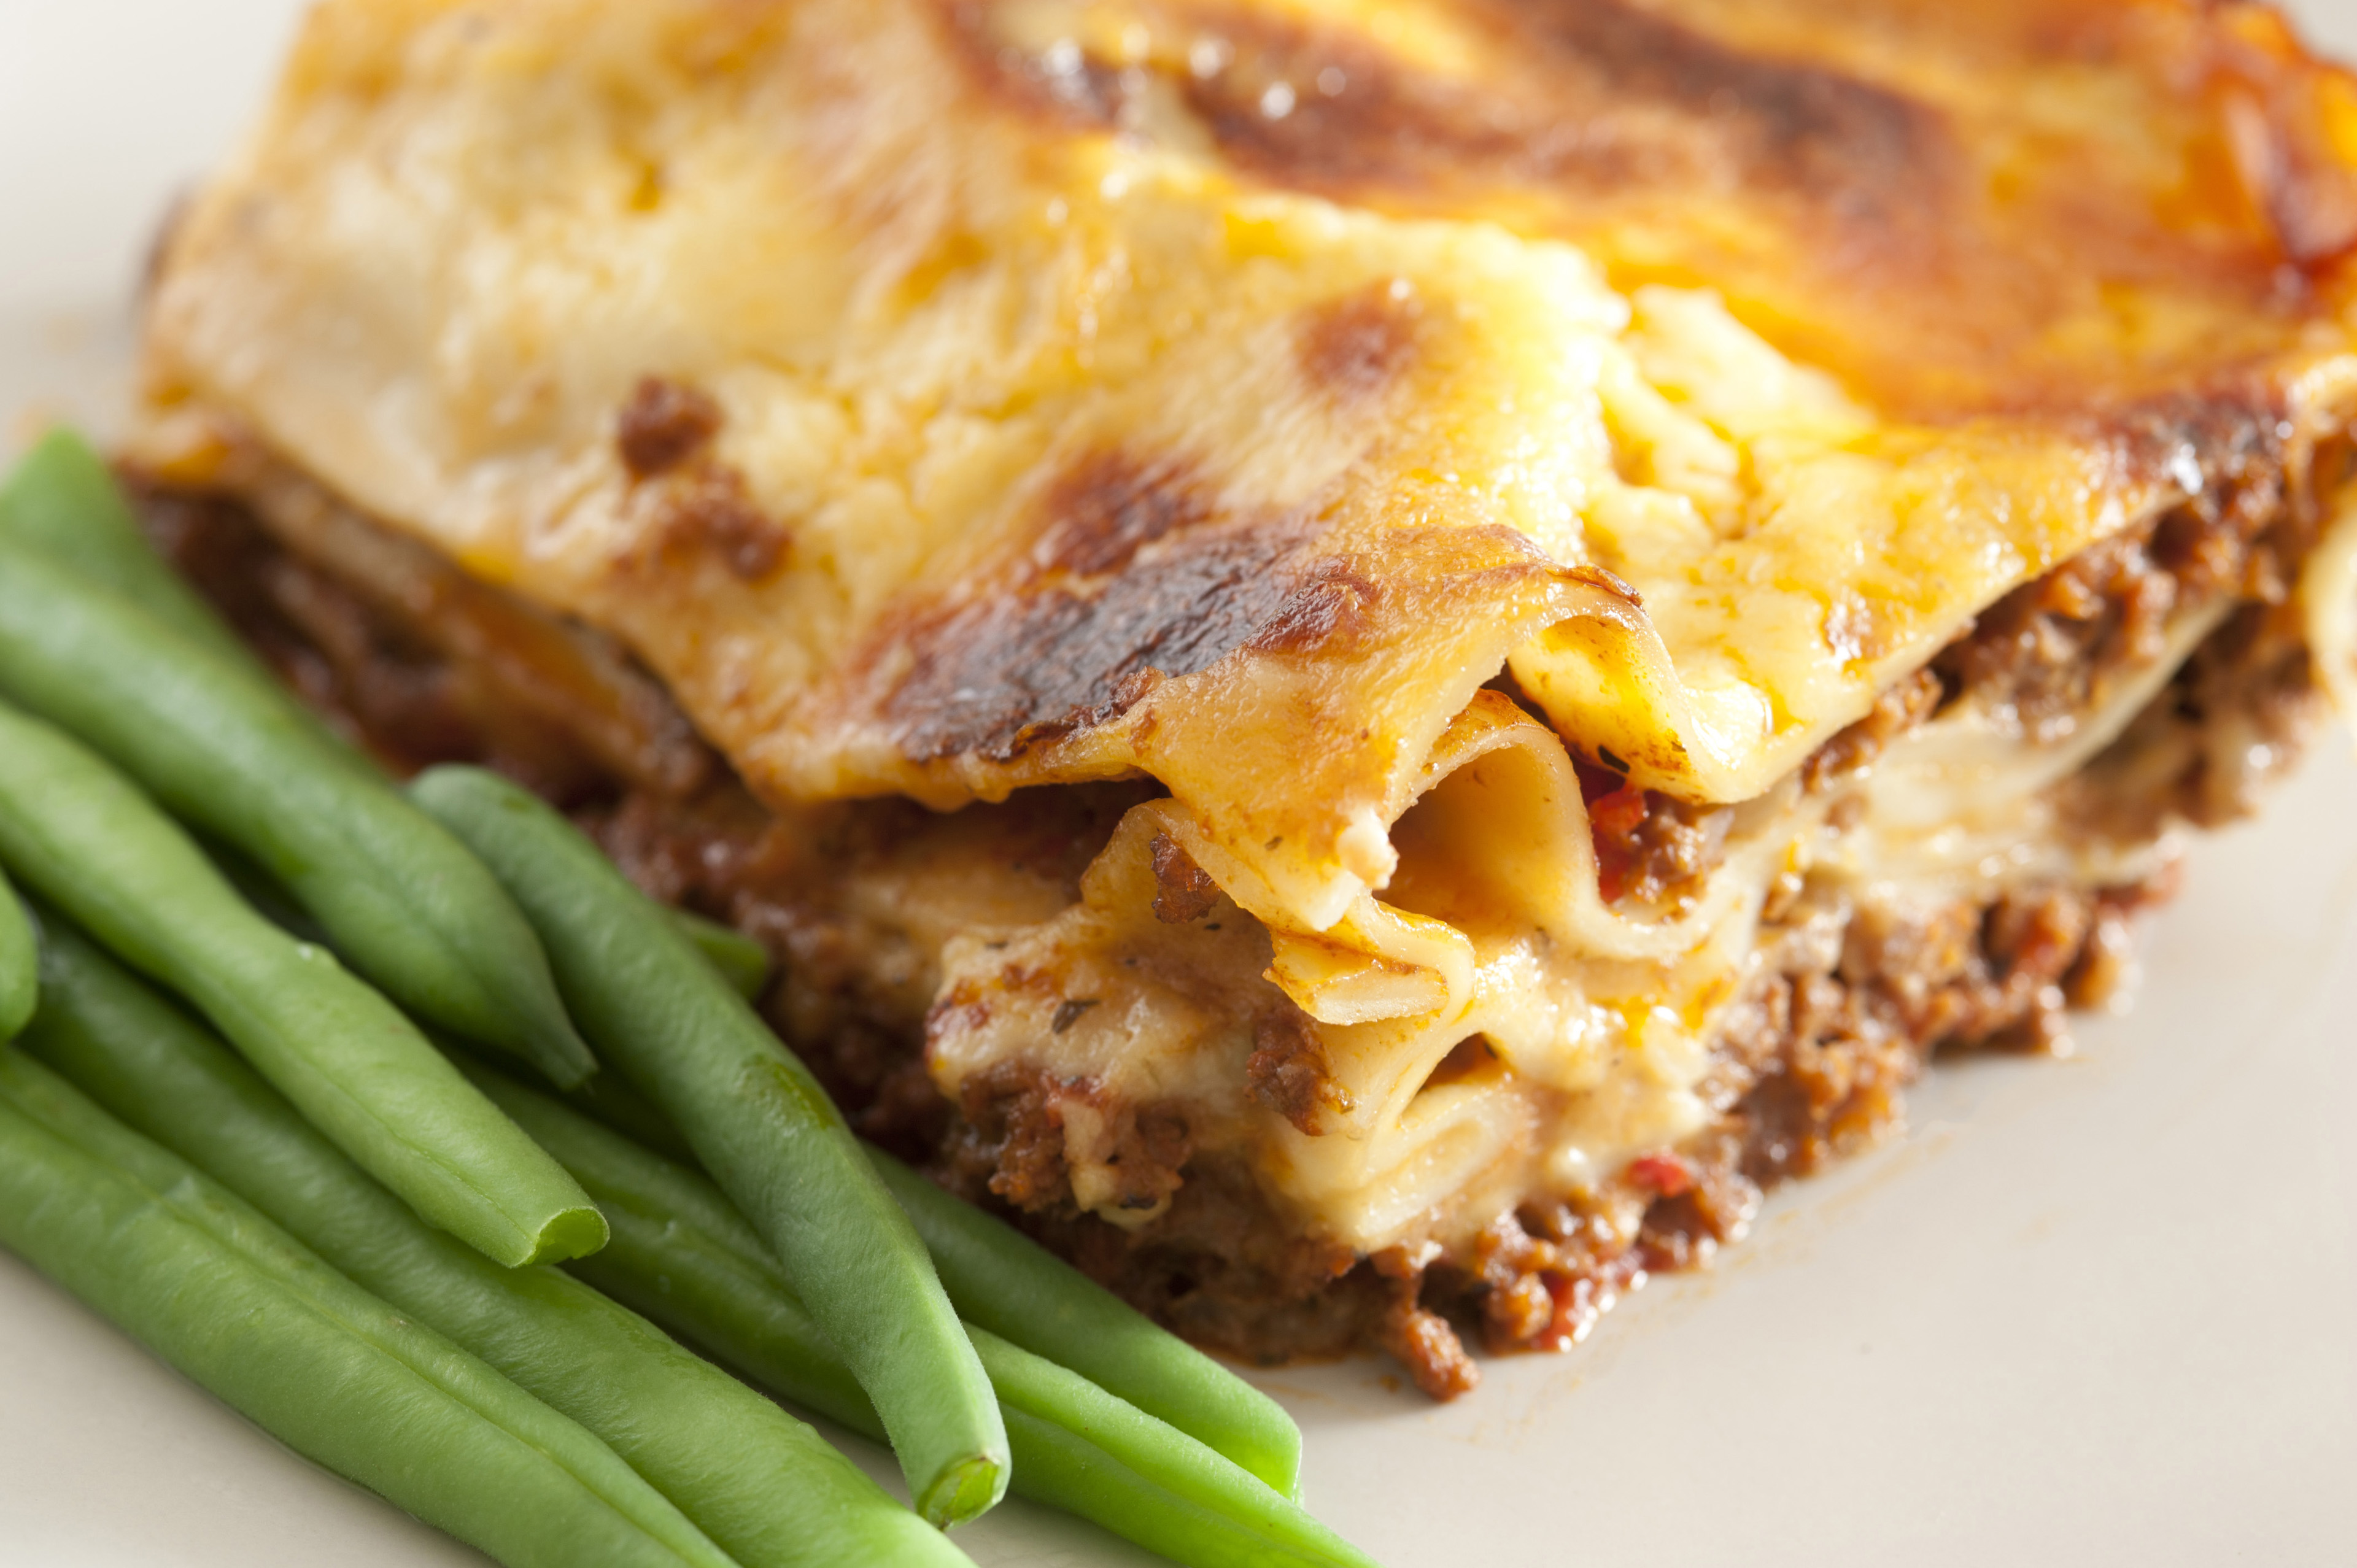 Close Up of Meal of Baked Lasagna Served with Green Beans on Plate for Dinner